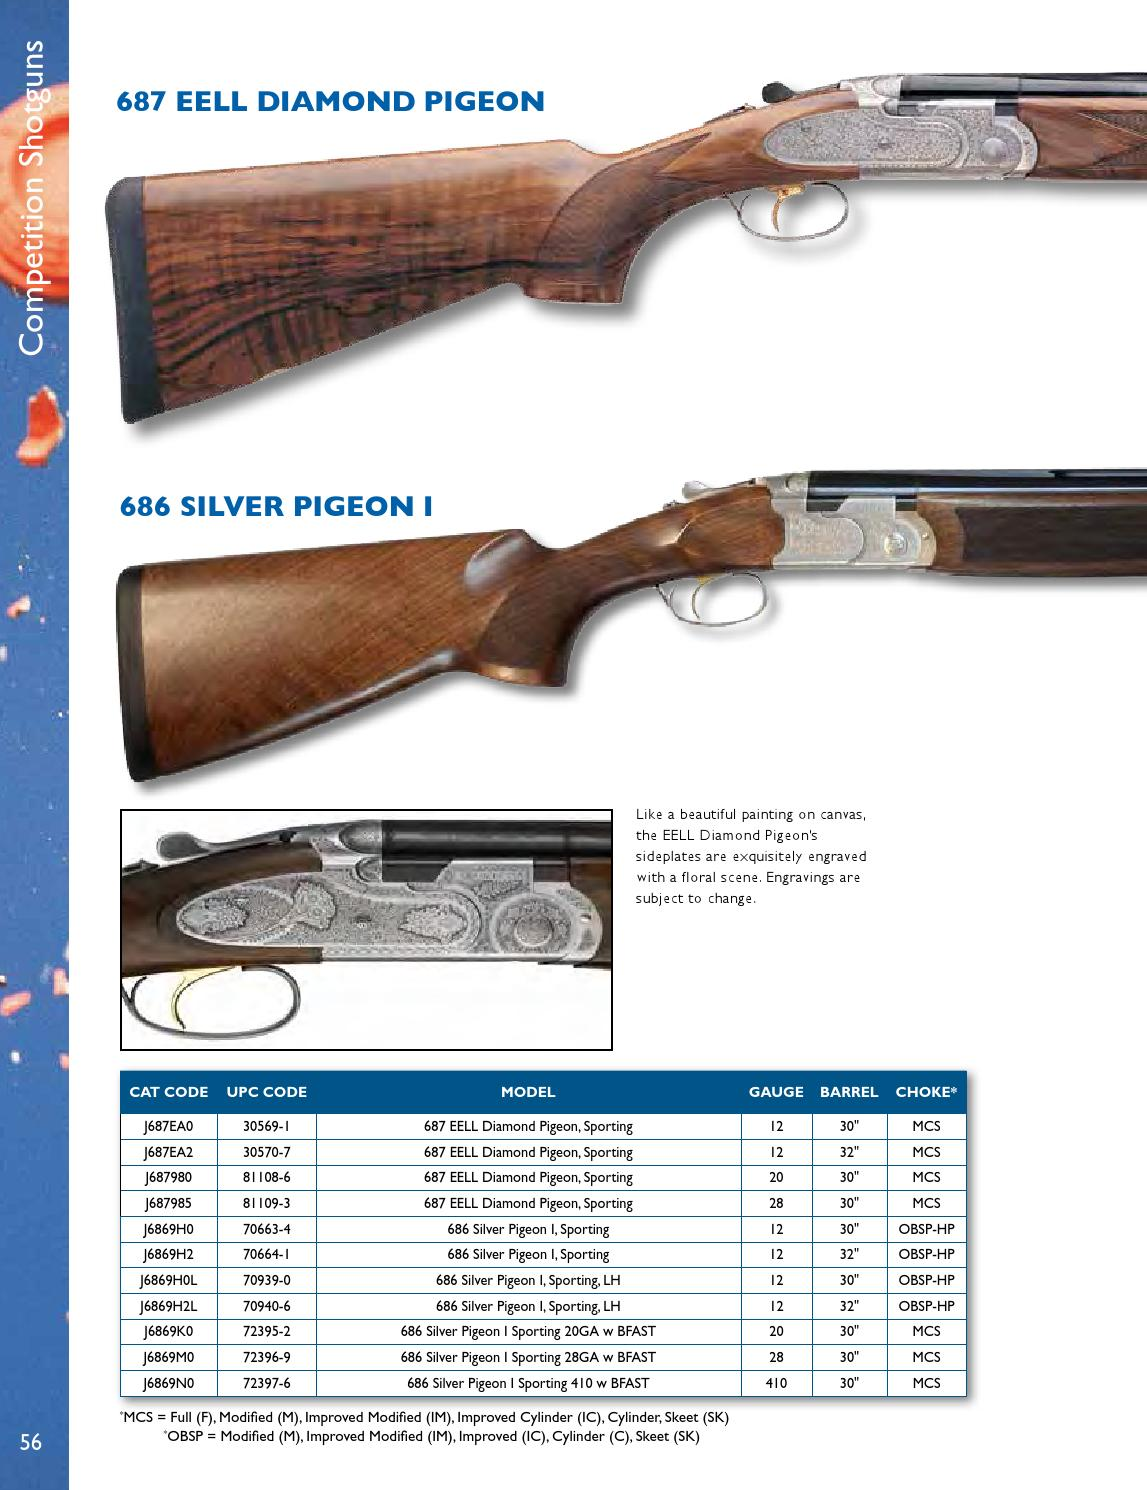 2016 Product Guide by Beretta USA corp - issuu